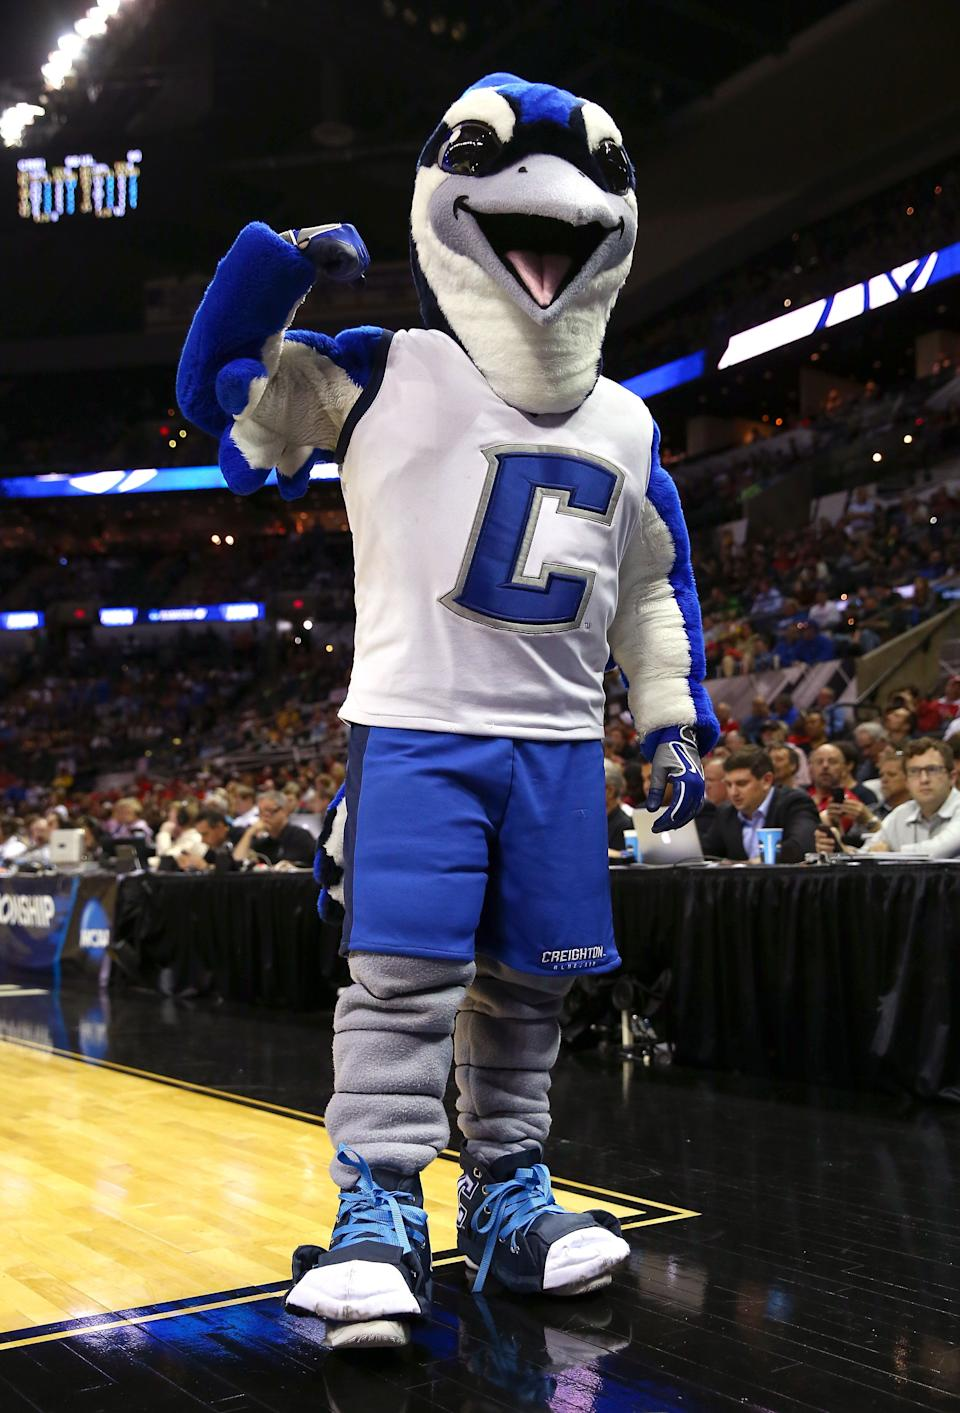 SAN ANTONIO, TX - MARCH 21:  The Creighton Bluejays mascot stands on the court in the second half against the Louisiana Lafayette Ragin Cajuns during the second round of the 2014 NCAA Men's Basketball Tournament at AT&T Center on March 21, 2014 in San Antonio, Texas.  (Photo by Tom Pennington/Getty Images)